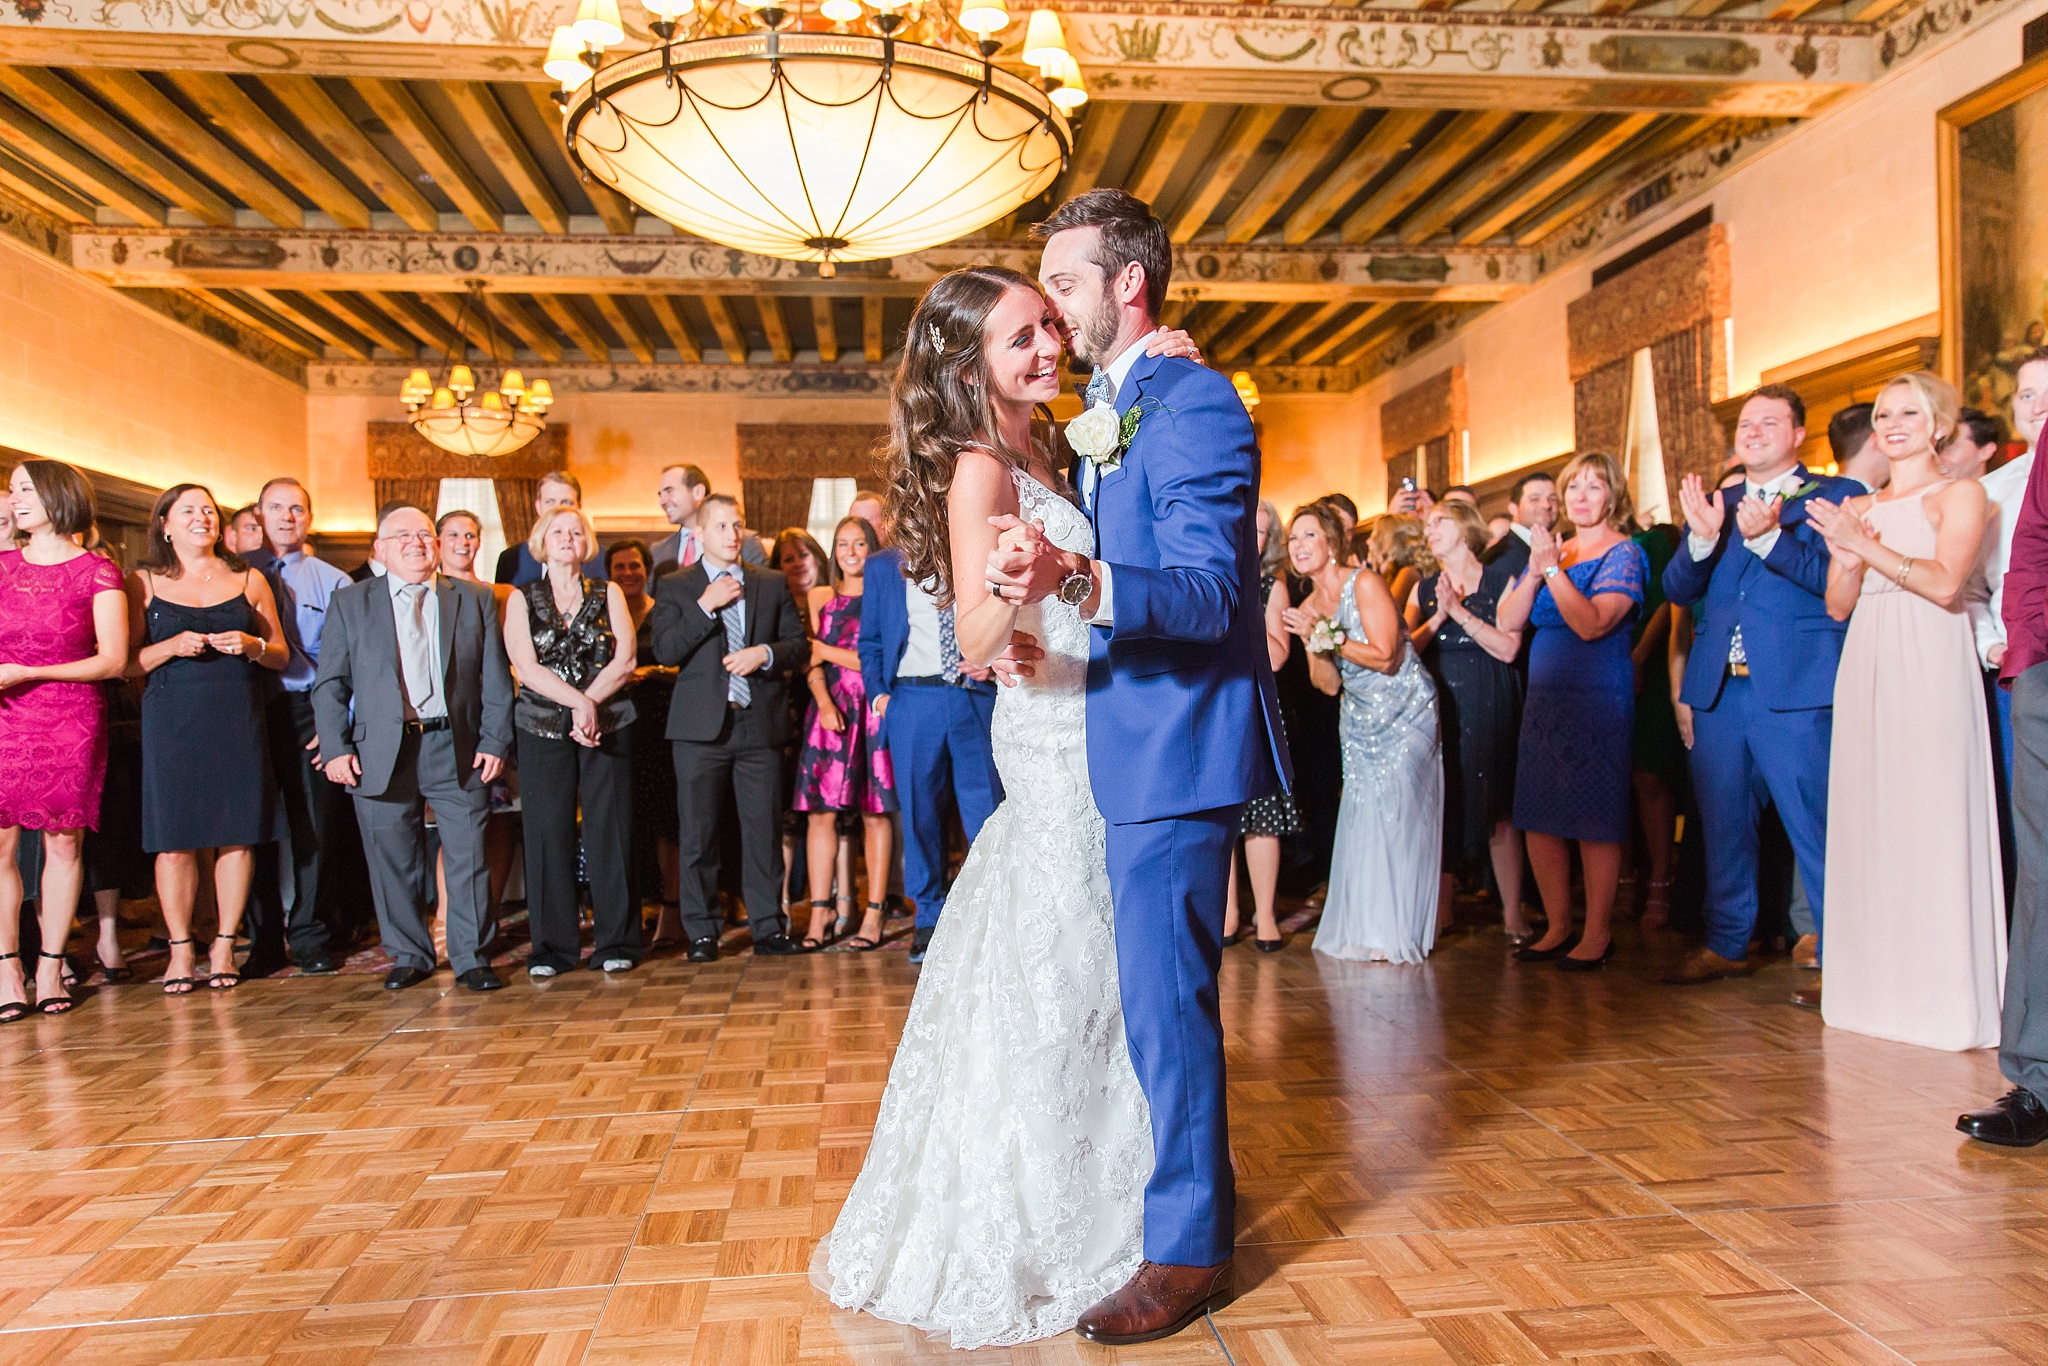 playful-blush-navy-wedding-photos-the-detroit-athletic-club-in-detroit-michigan-by-courtney-carolyn-photography_0069.jpg